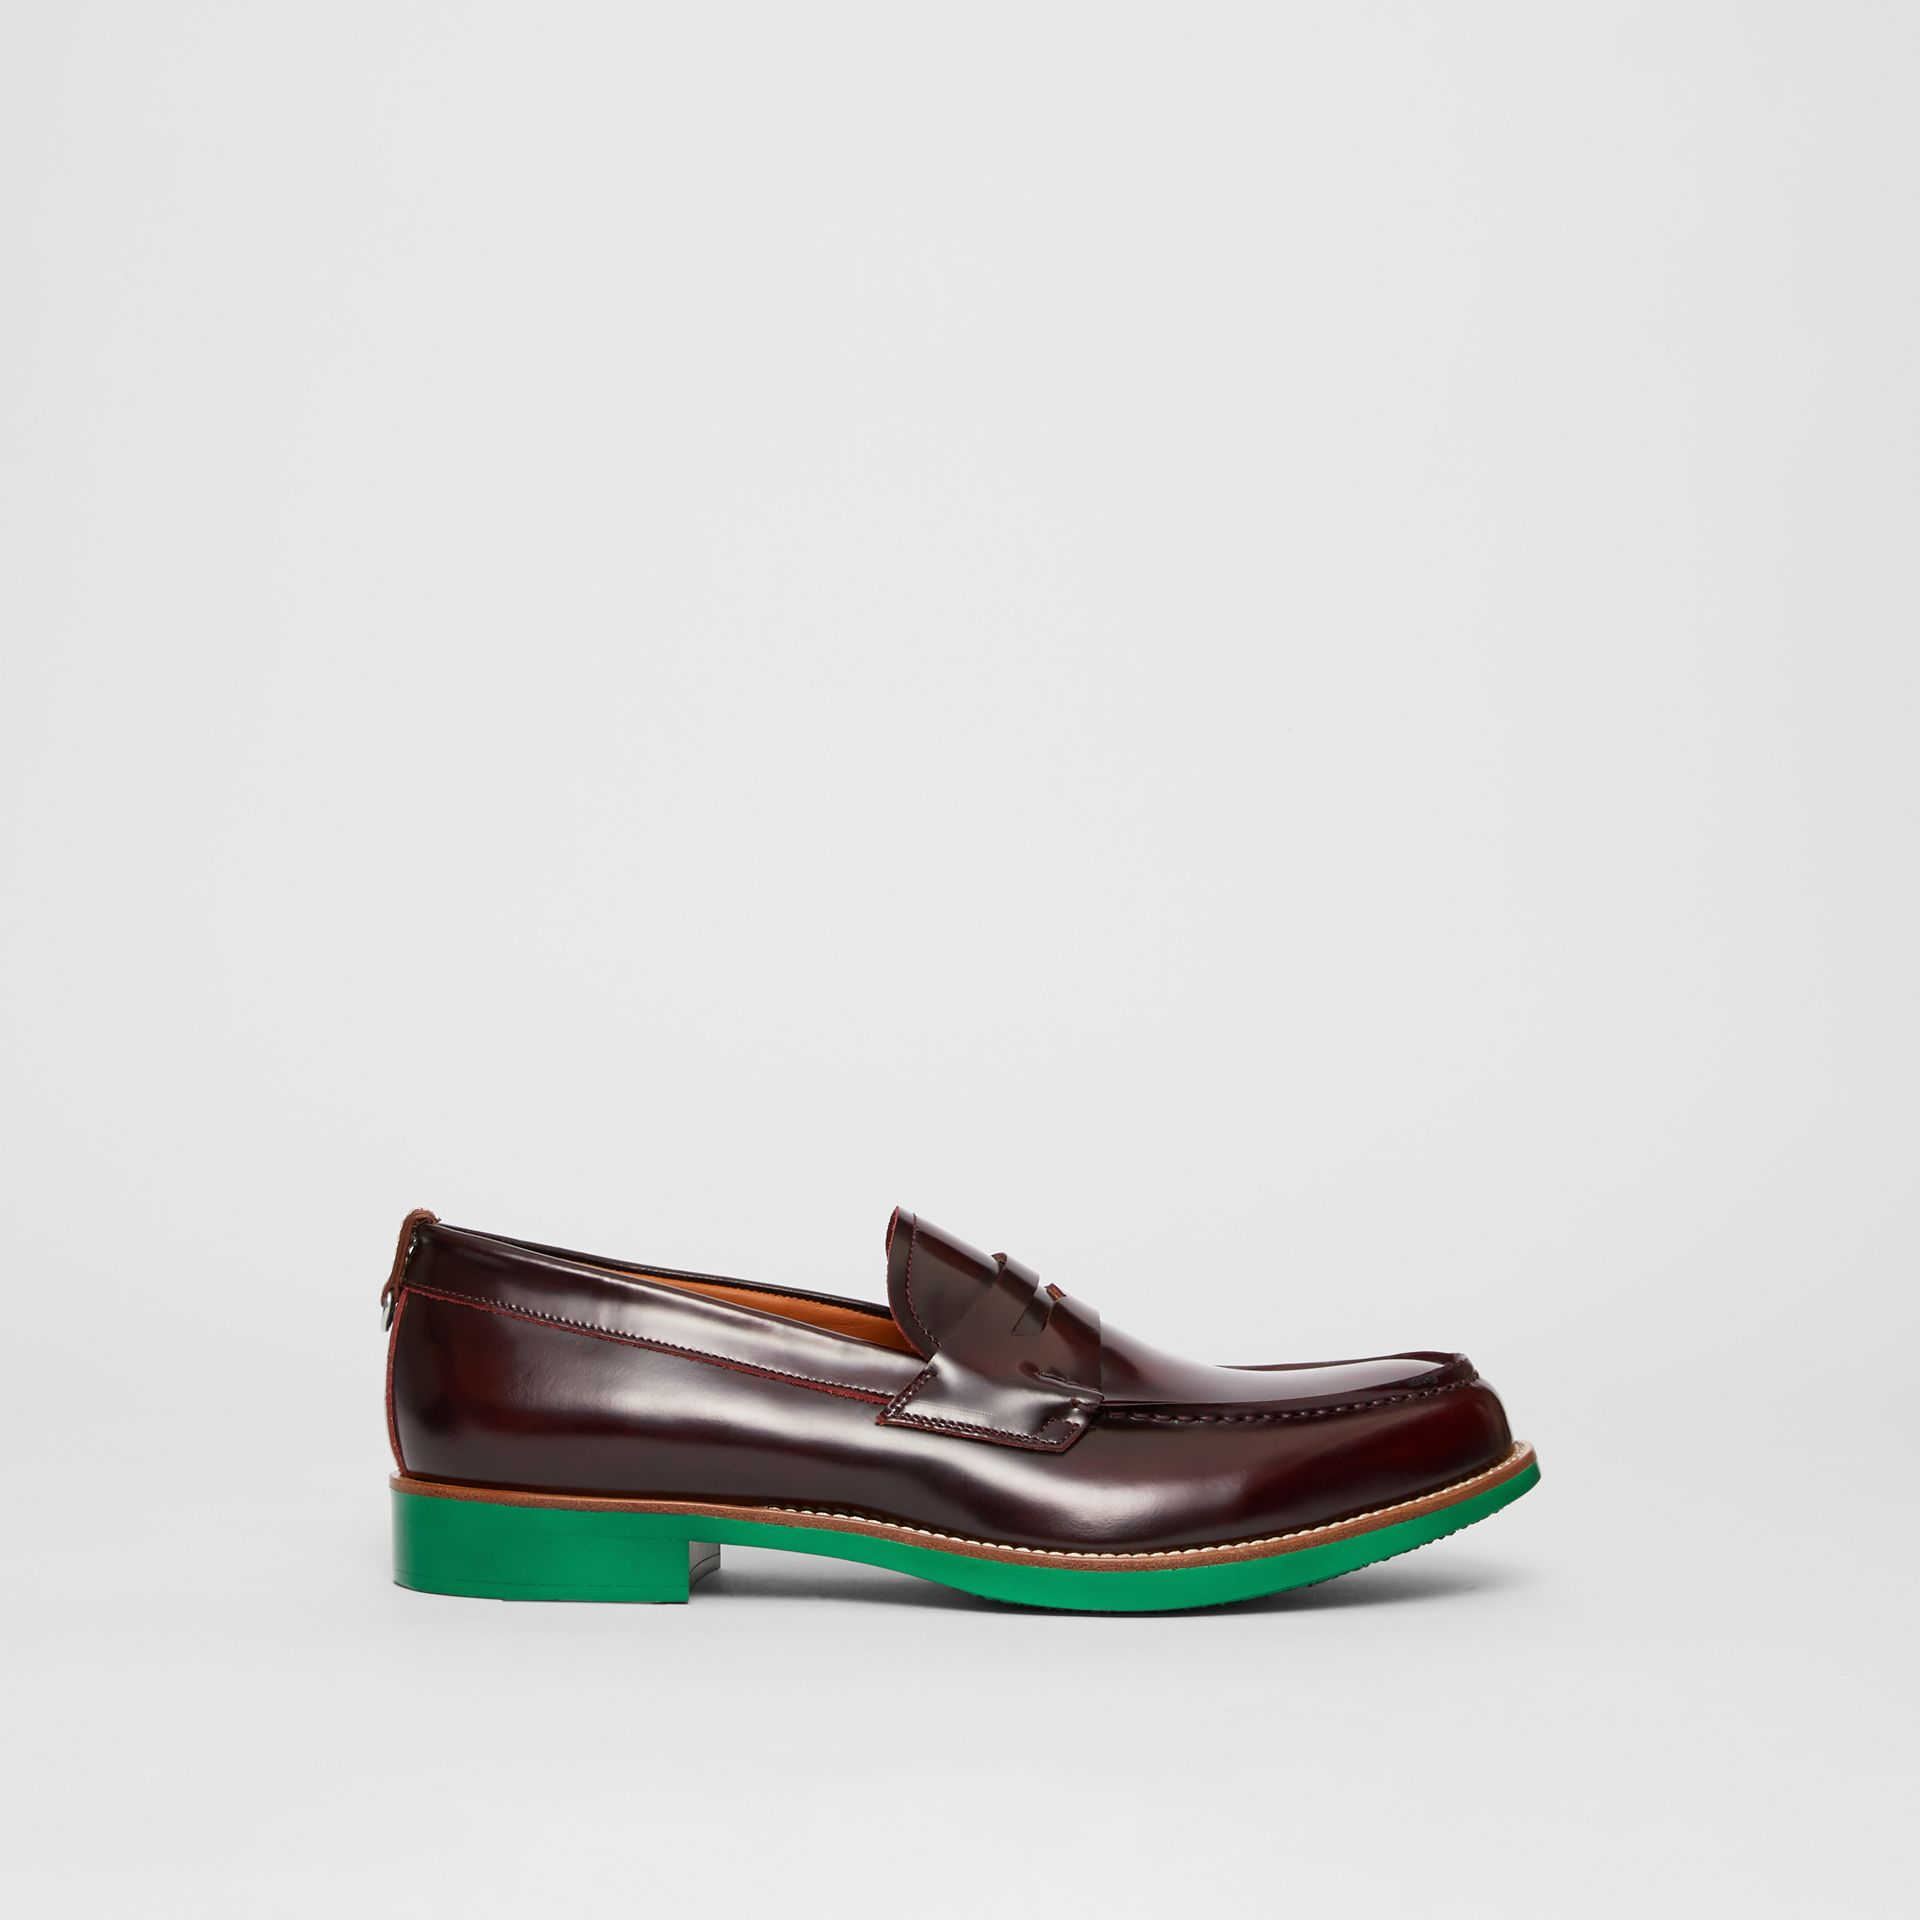 D-ring Detail Contrast Sole Leather Loafers in Bordeaux/green - Men | Burberry Singapore - gallery image 5